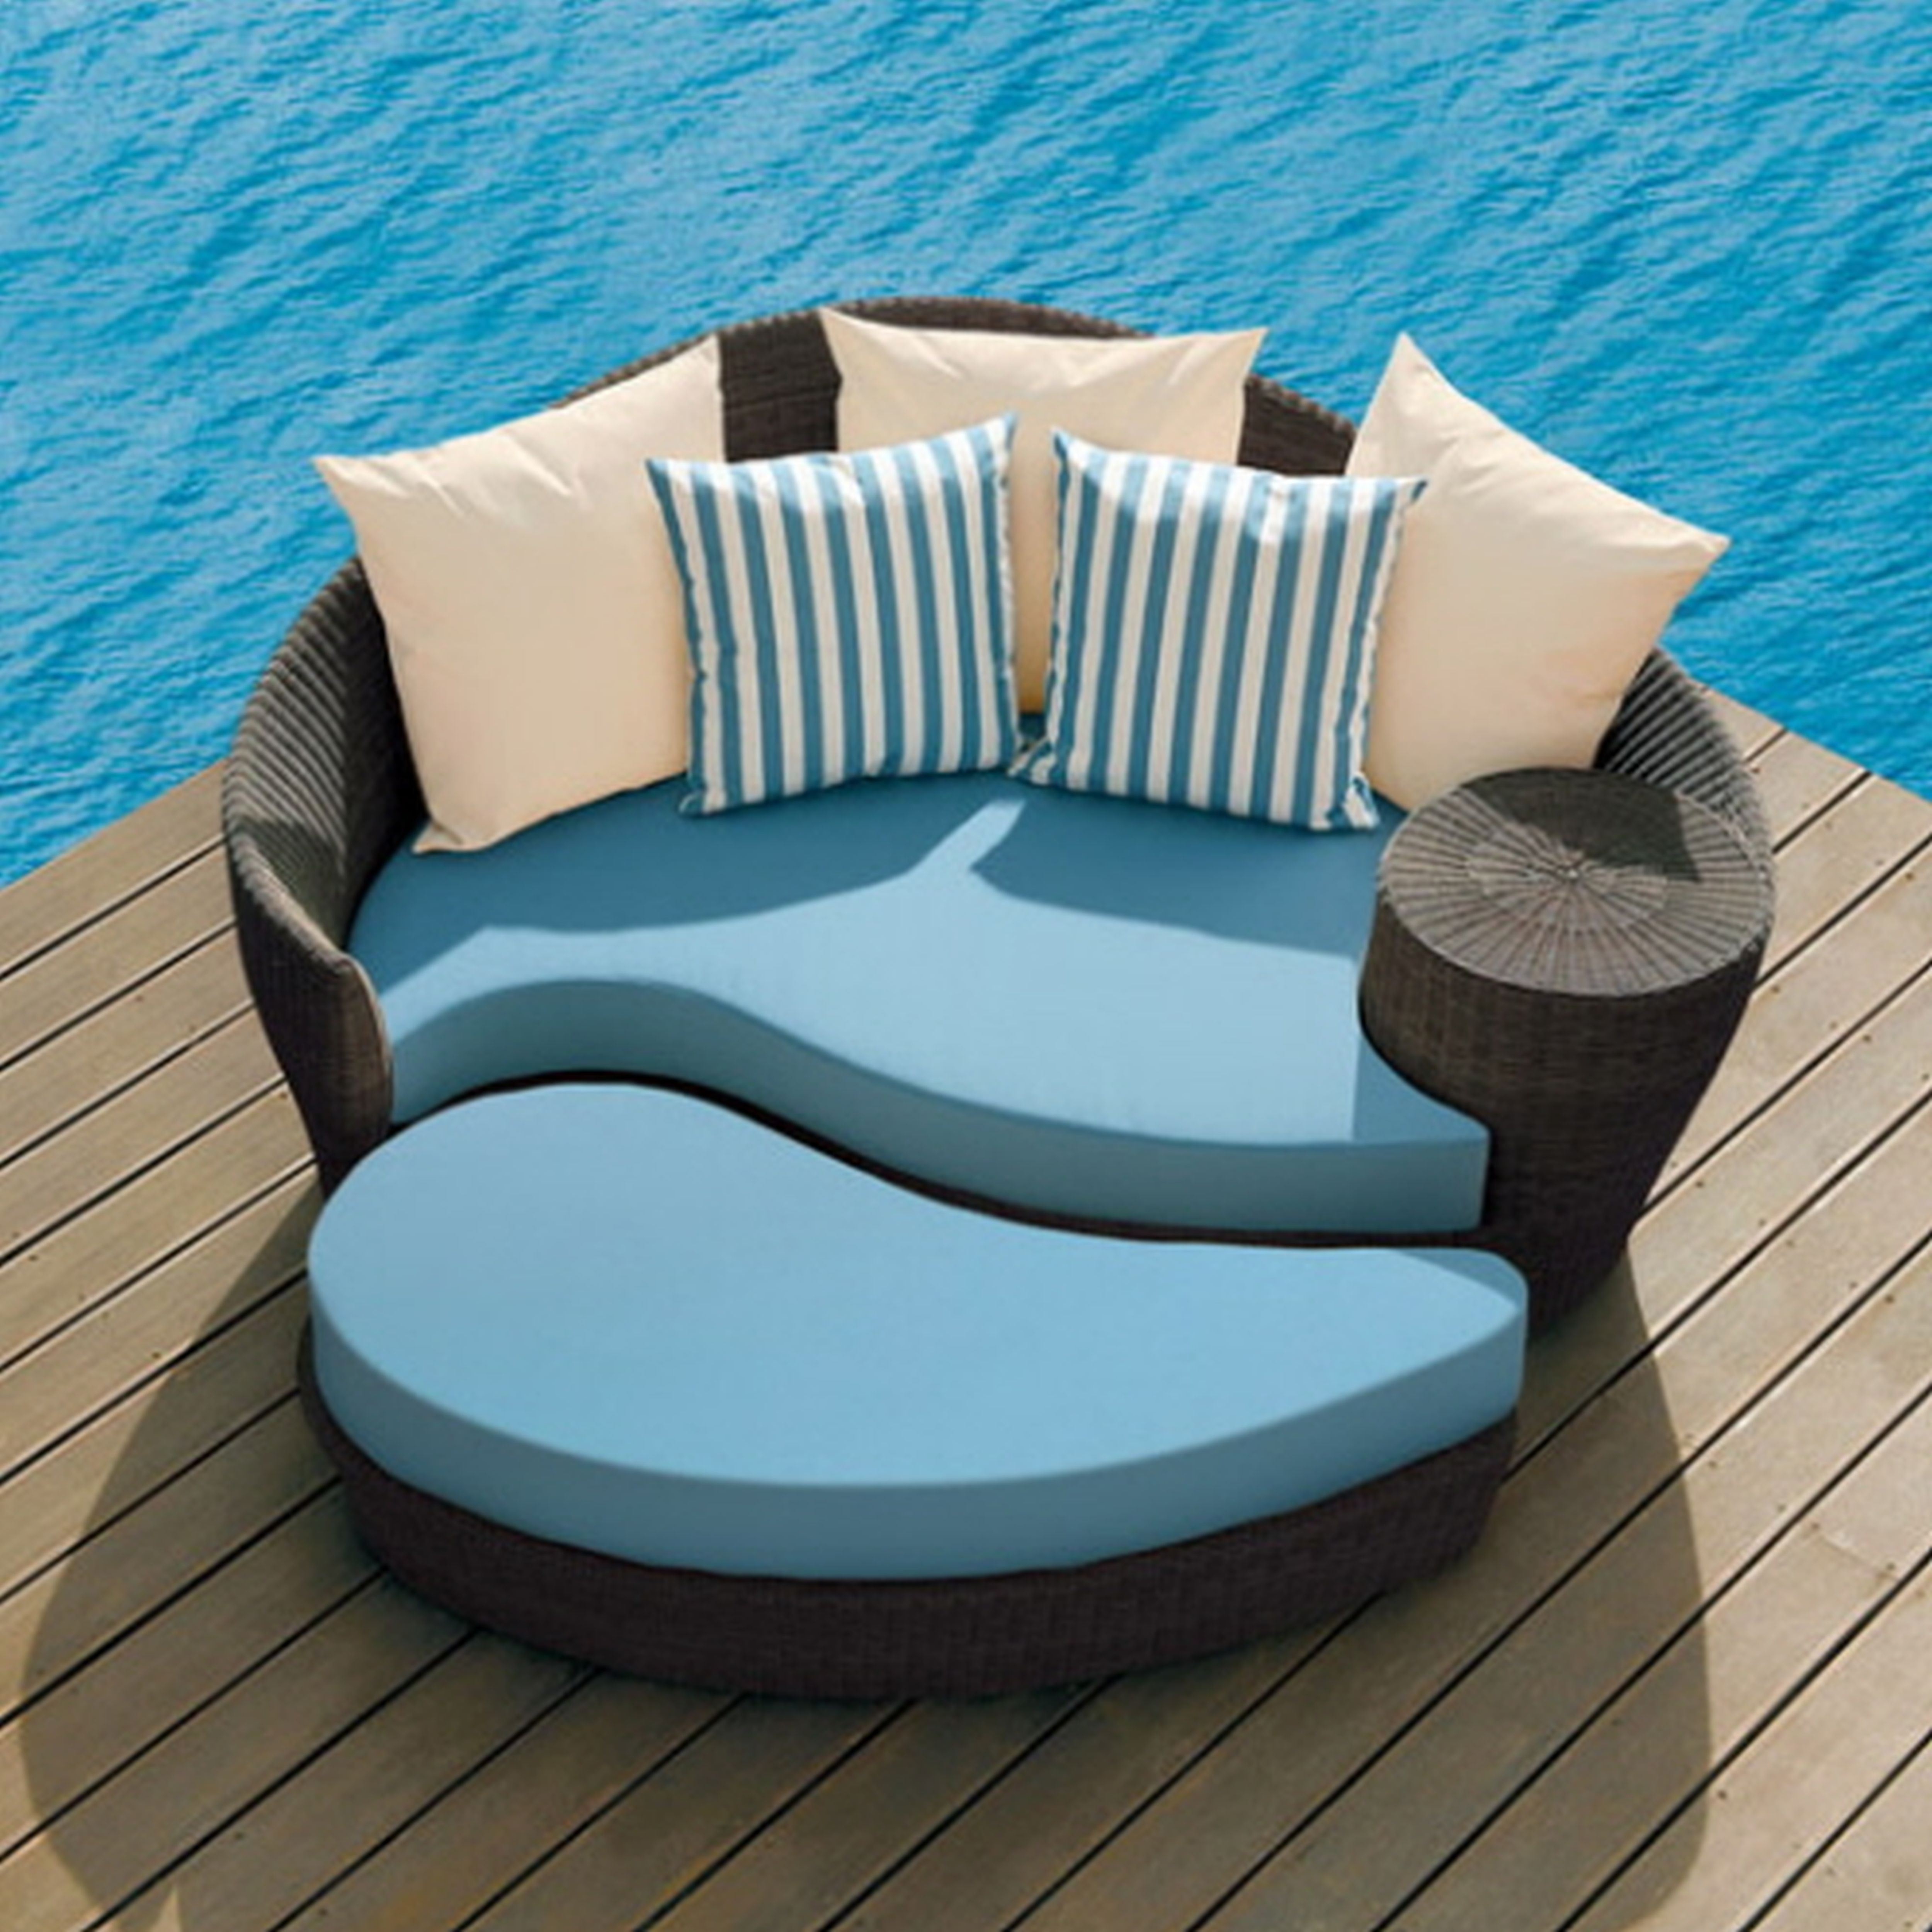 Endearing Contemporary Patio Furniture Build Magnificent Indoor ...